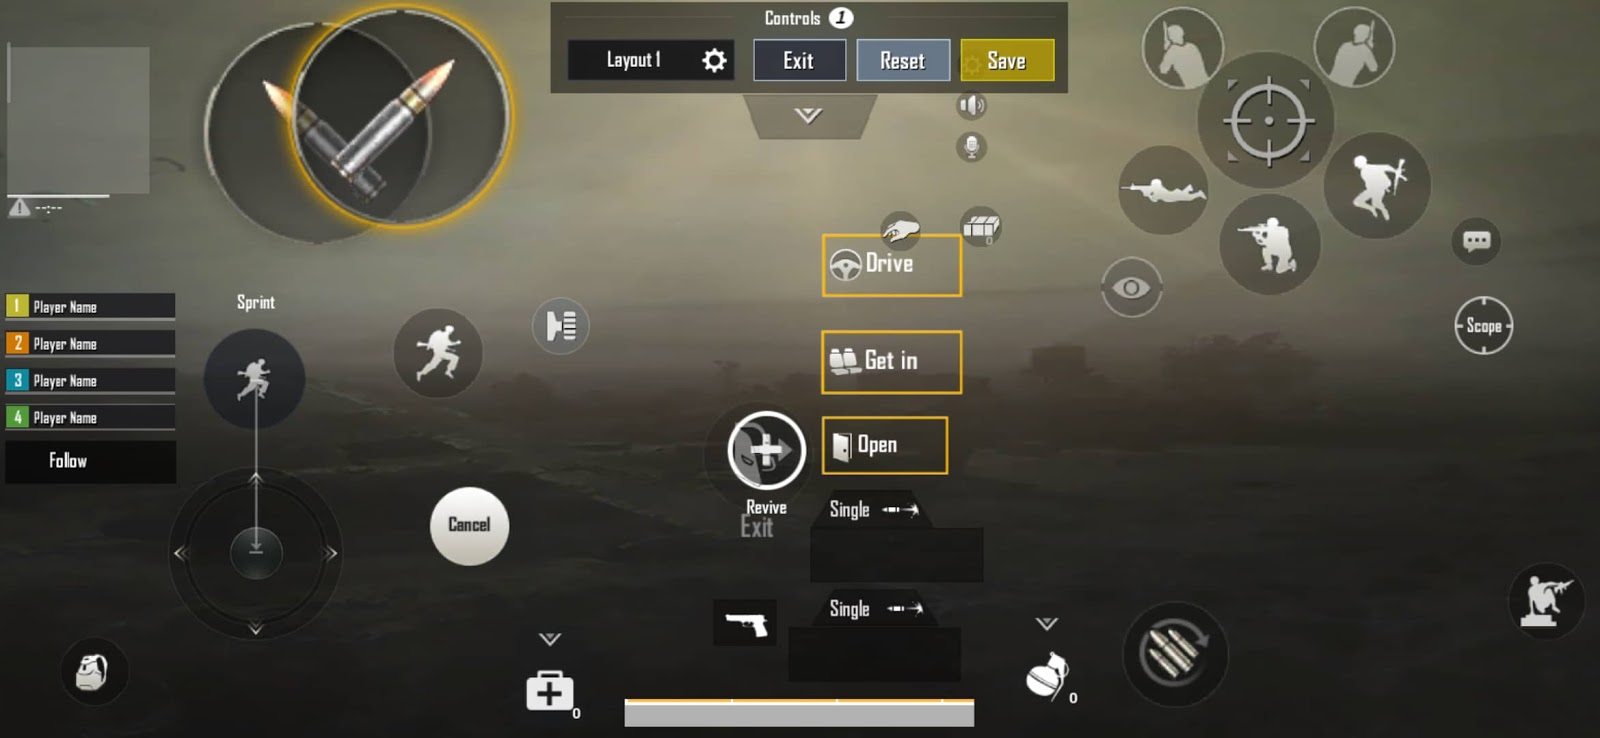 4 Finger Claw PUBG MOBILE Layout